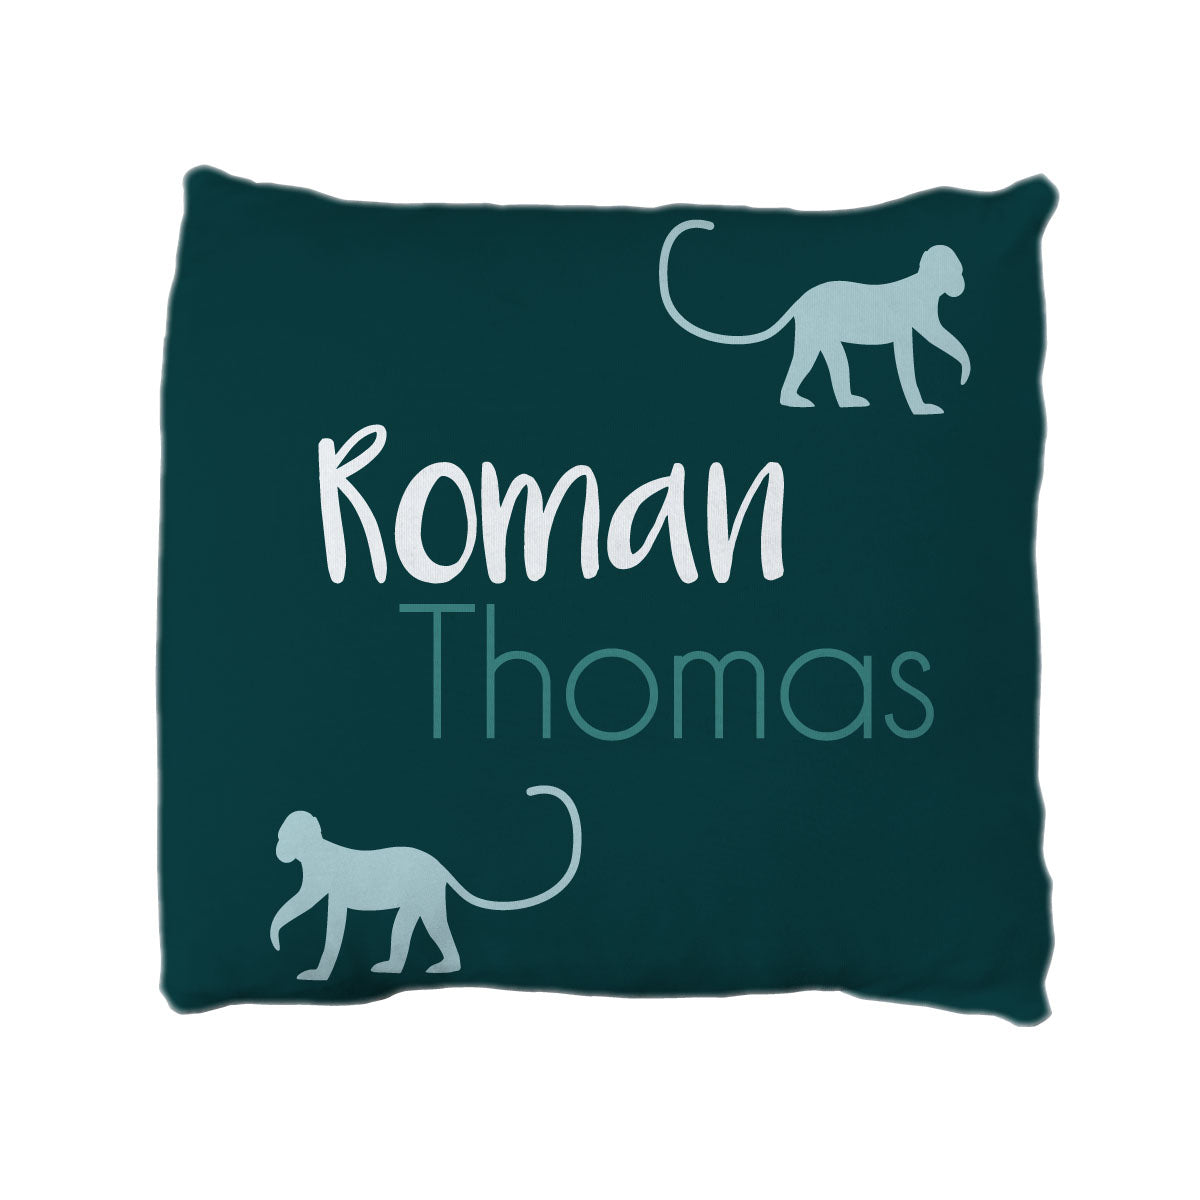 Roman's Monkey Mischief | Big Kid Throw Pillow